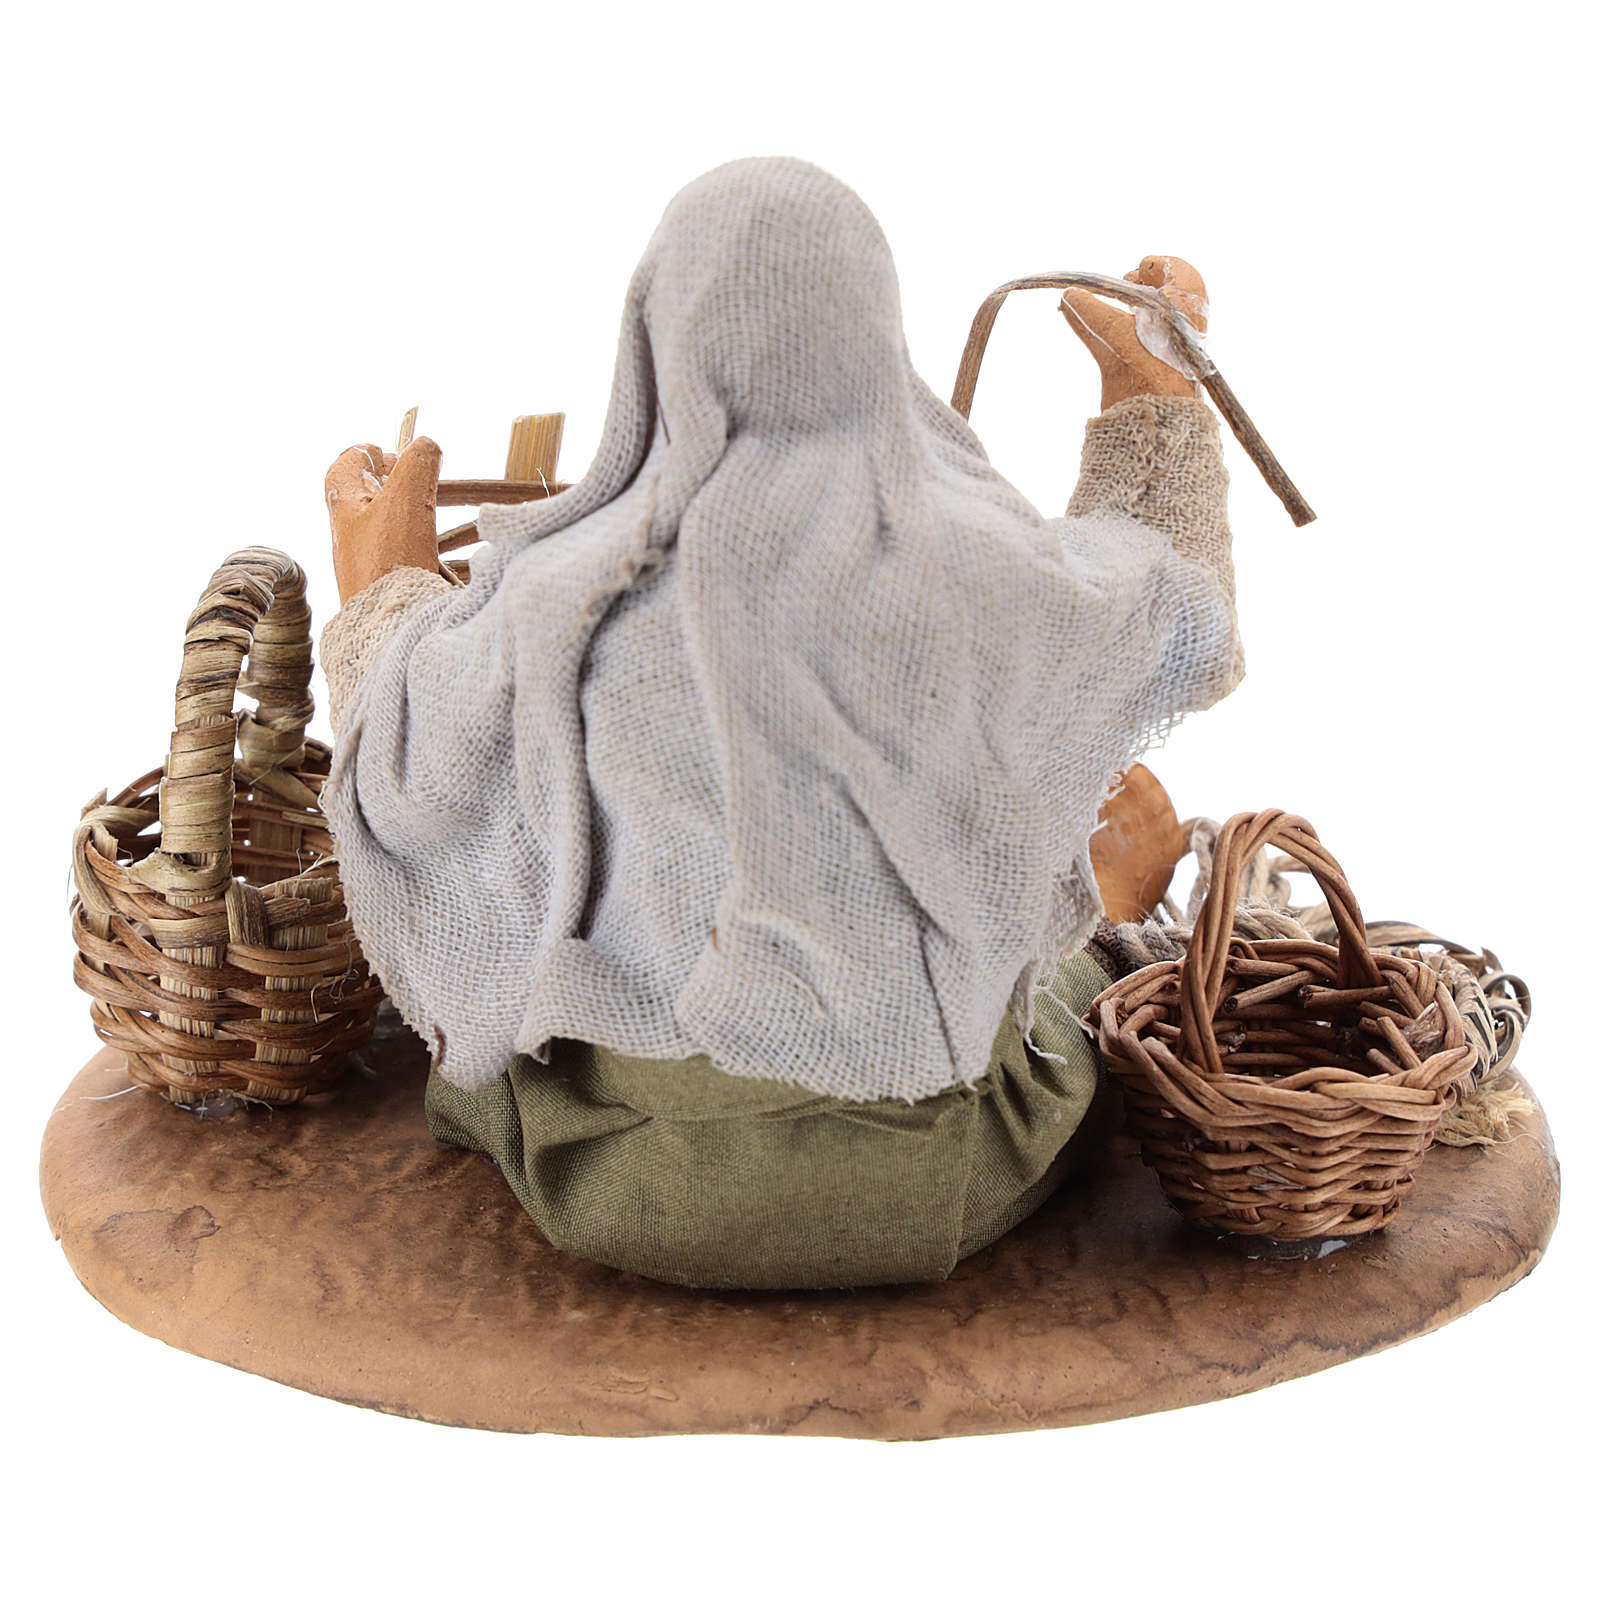 Seated basket repairer in resin Nativity scenes 14 cm 4